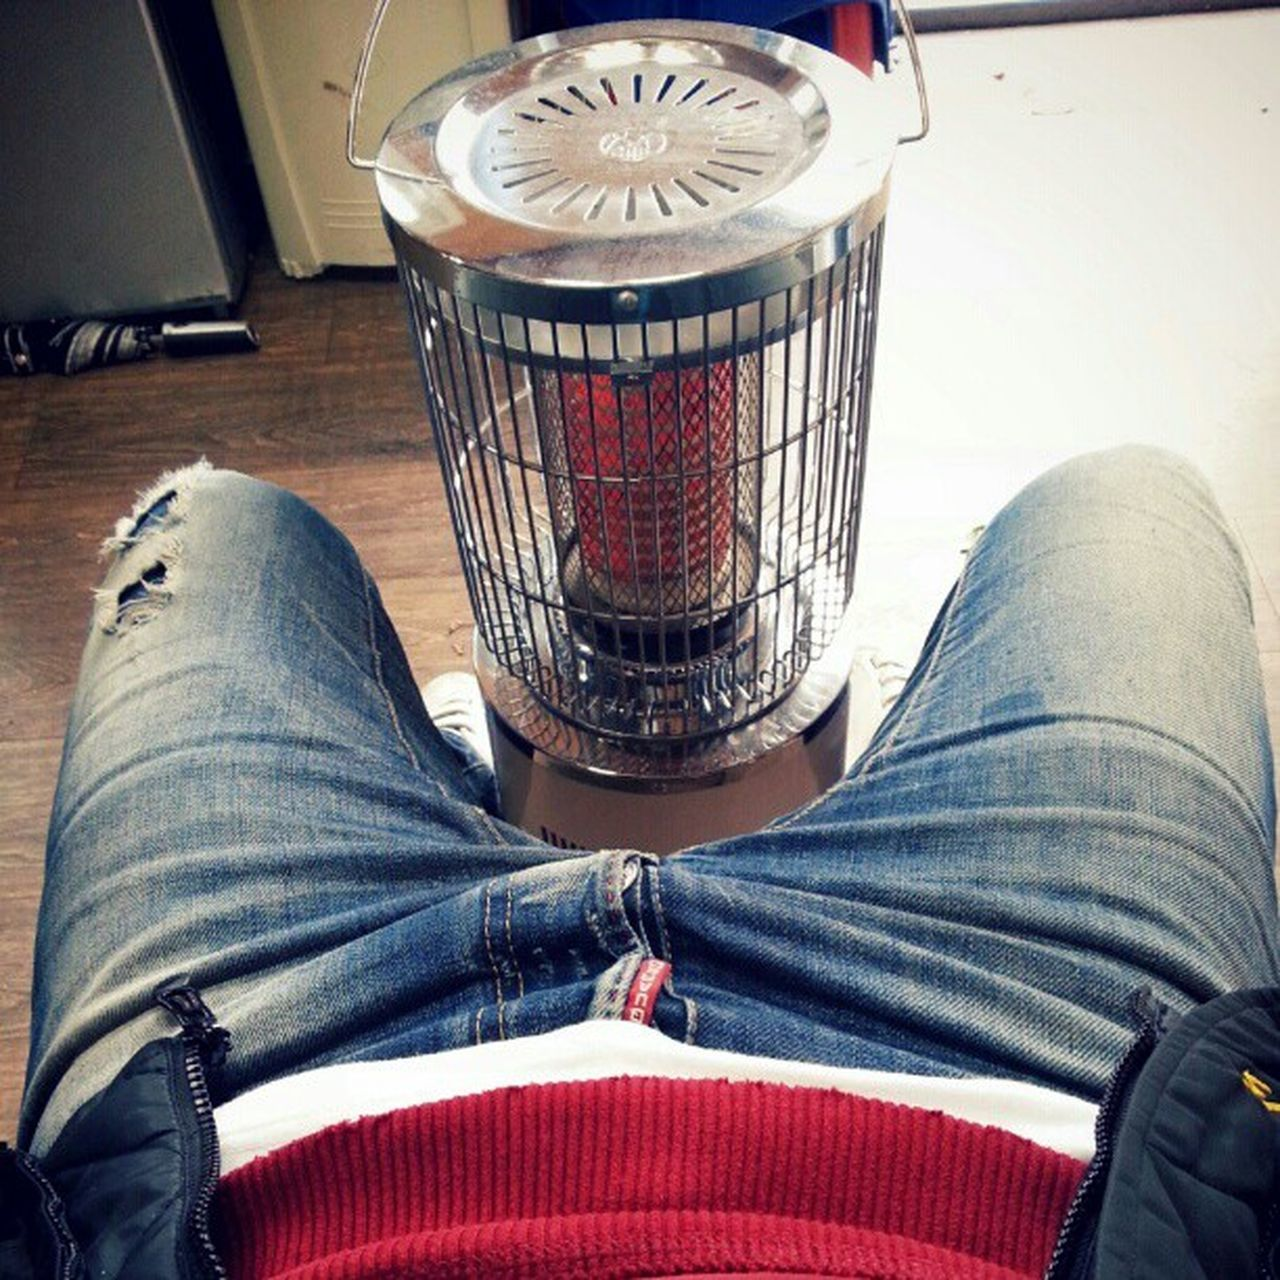 Here is almost winter :( DSQUARED2 Biker Jeans White red hoddie sit heater cold winter korea fashion